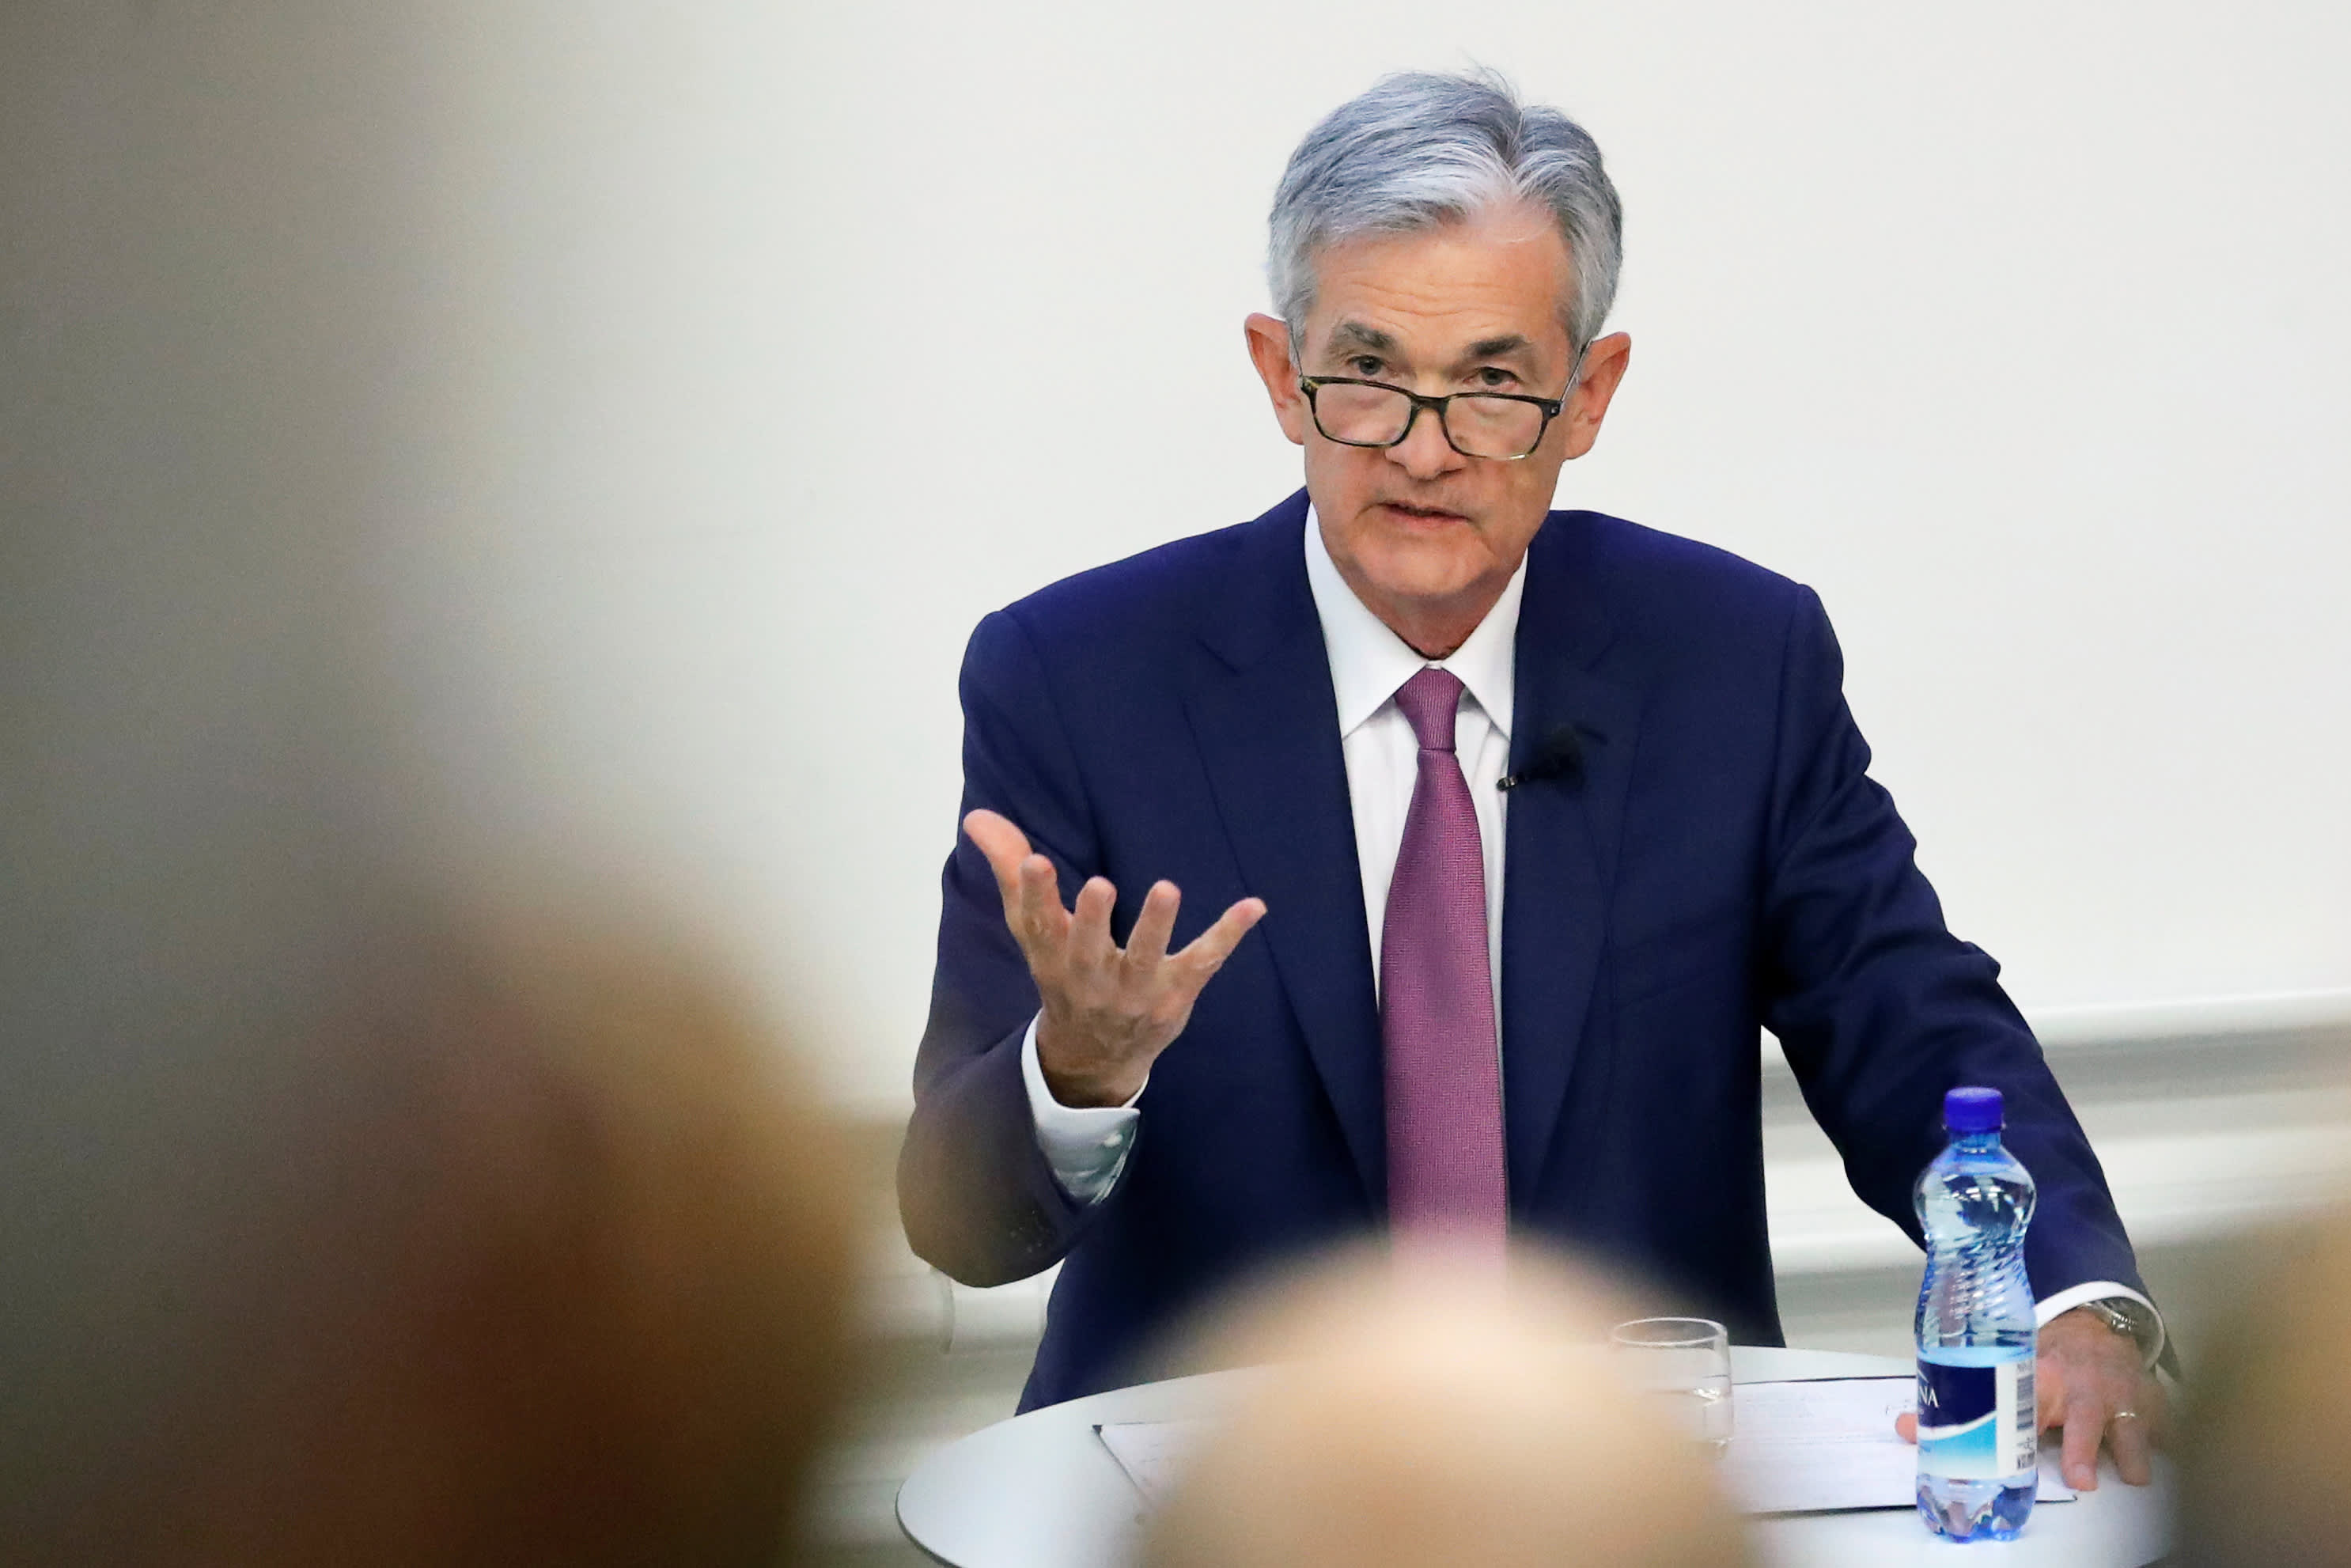 Fed chief Powell says trade policy is weighing on investment decisions